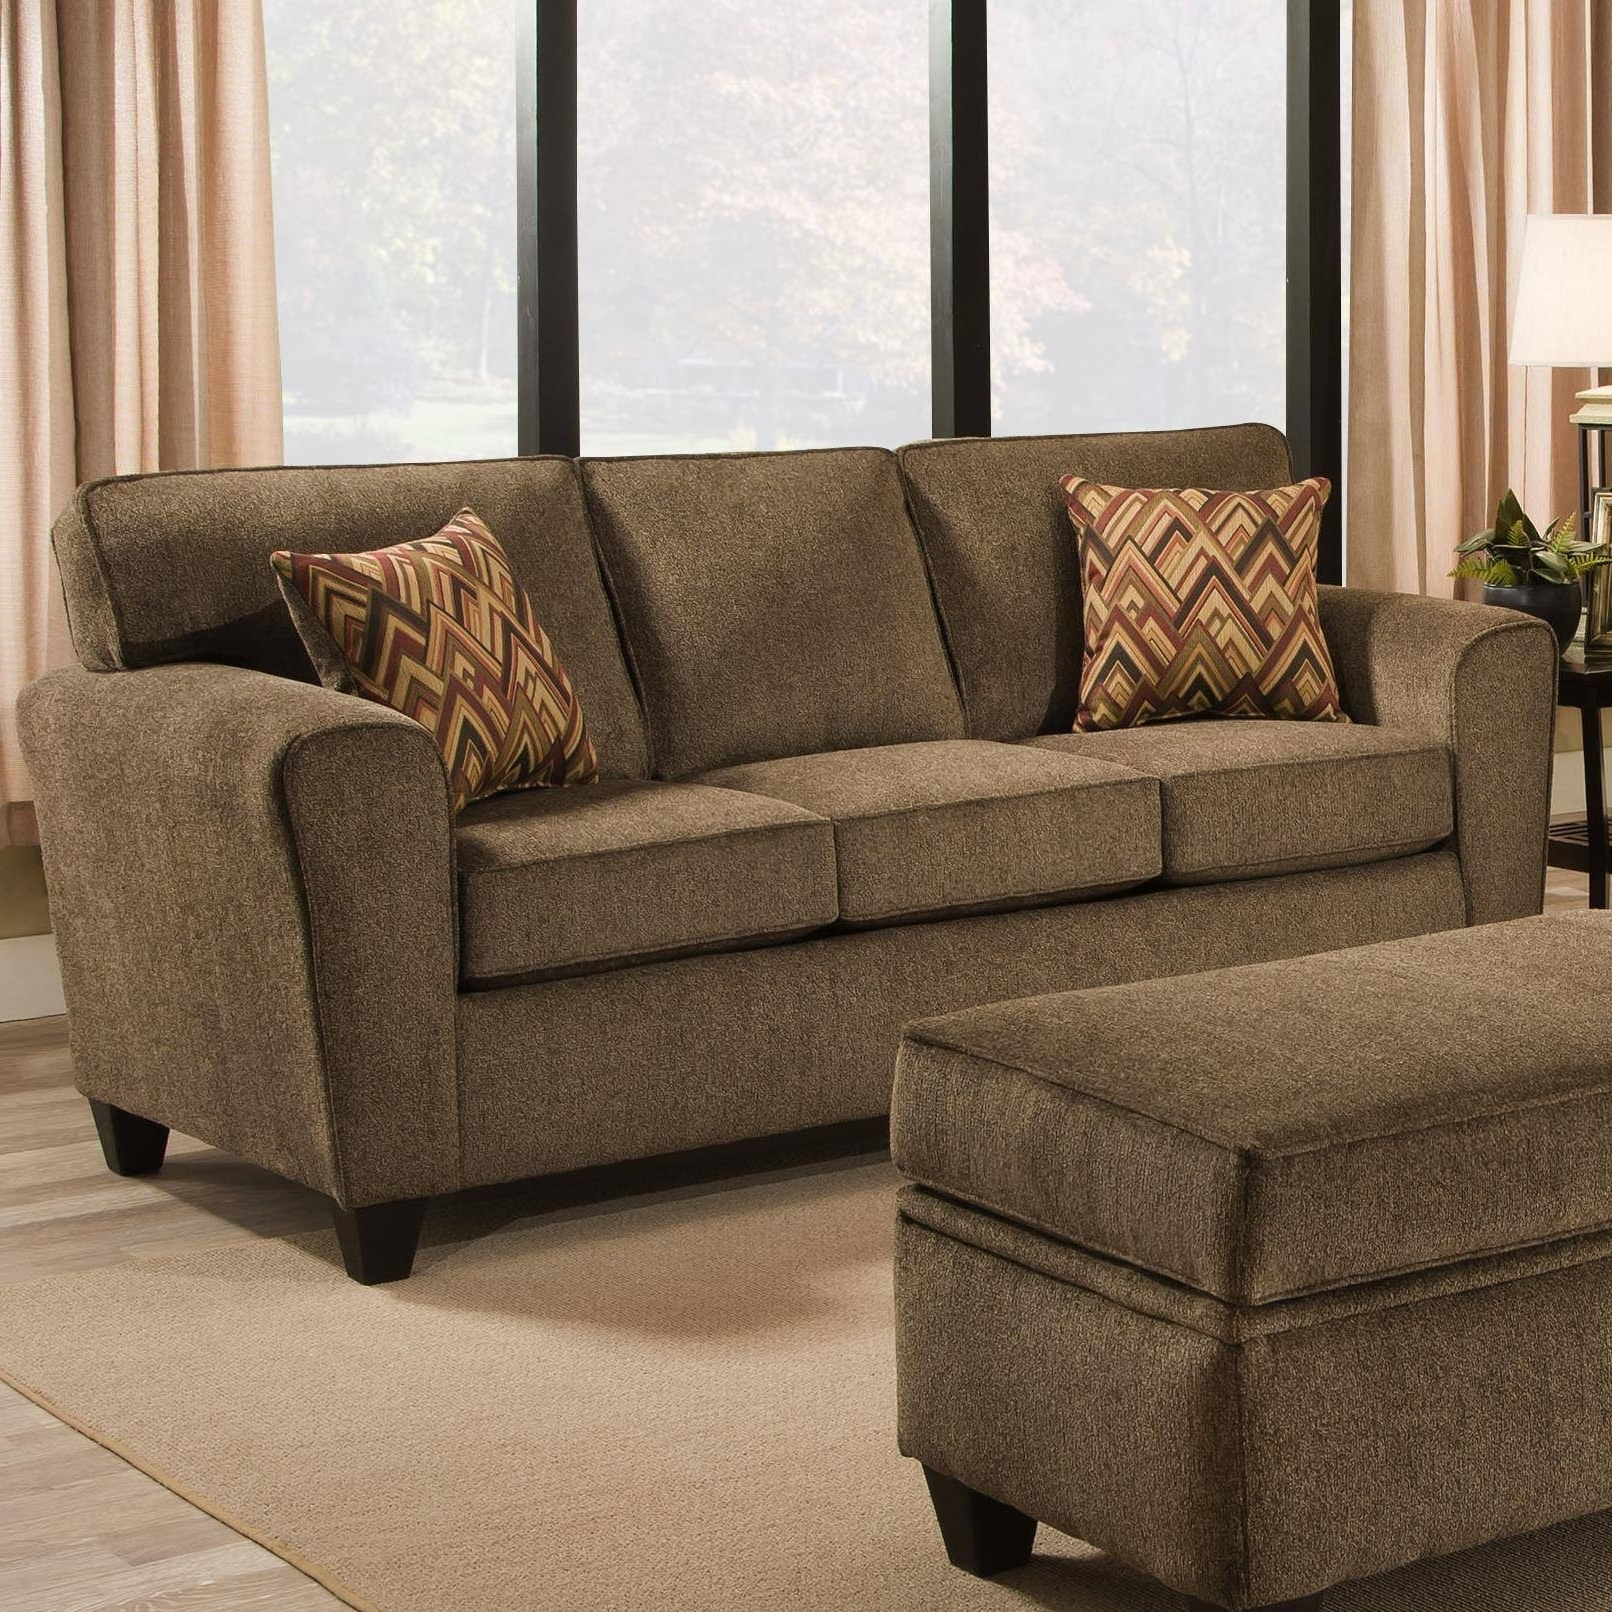 Preferred Furniture : Ethan Allen Down Filled Sofa Beautiful Sectional Sofas Regarding Down Filled Sofas (View 16 of 20)